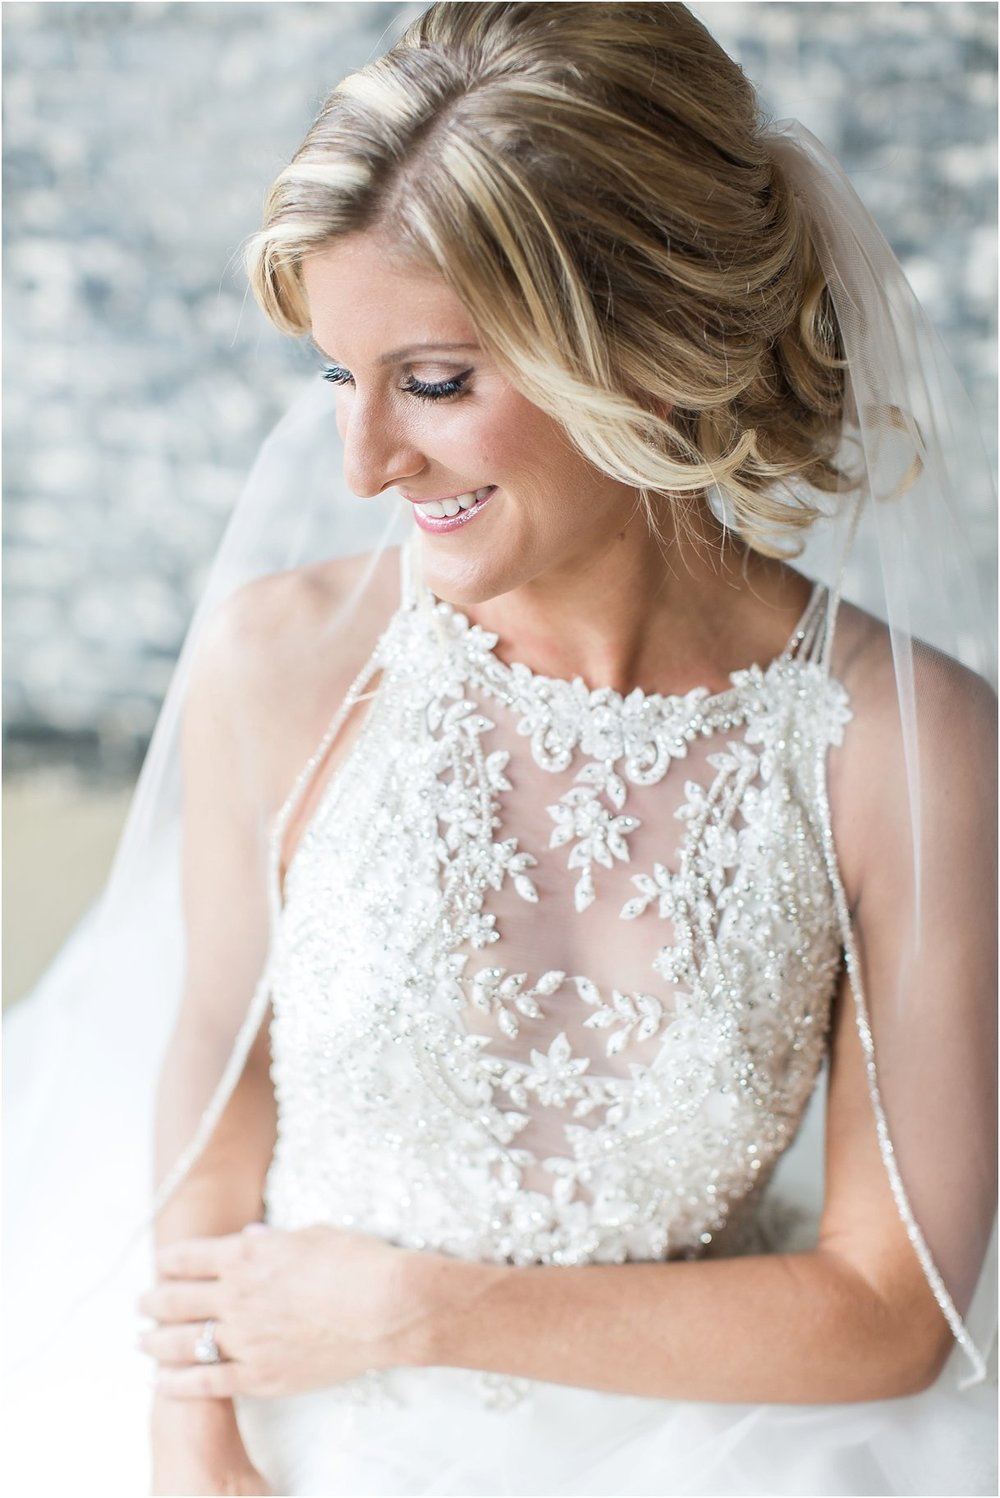 PSJ Photography-Gorgeous-Bride-Oxford-Exchange-Wedding-Tampa-Maggie-Sottero-Wedding-Gown-Lace